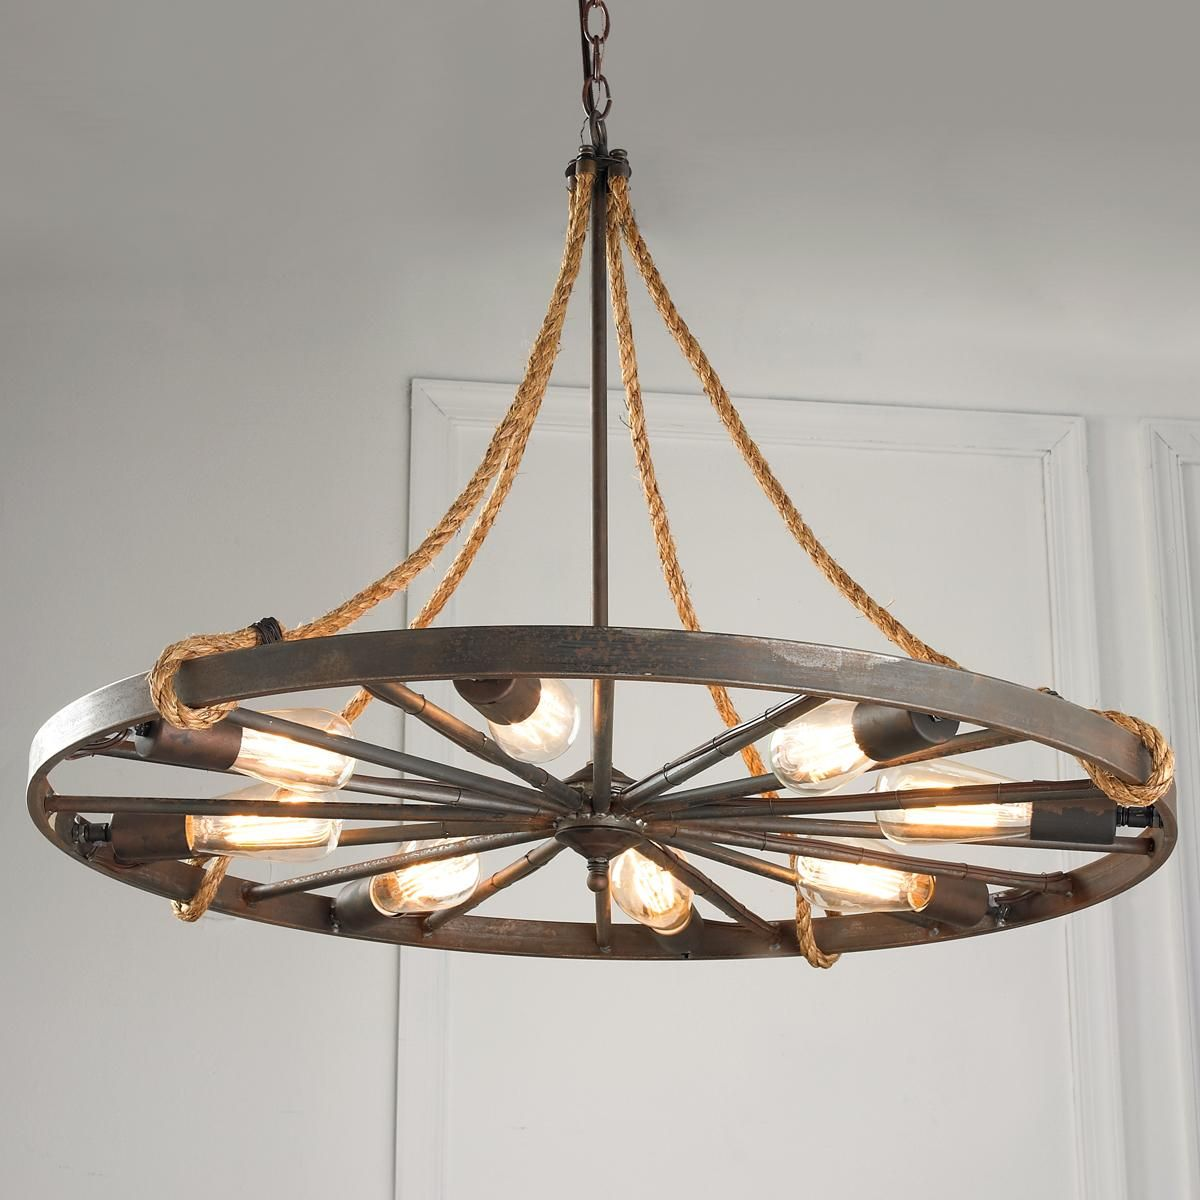 Marvelous Vintage Wagon Wheel Chandelier We Take Wood And Metal Wagon Wheels From The  Past, Add